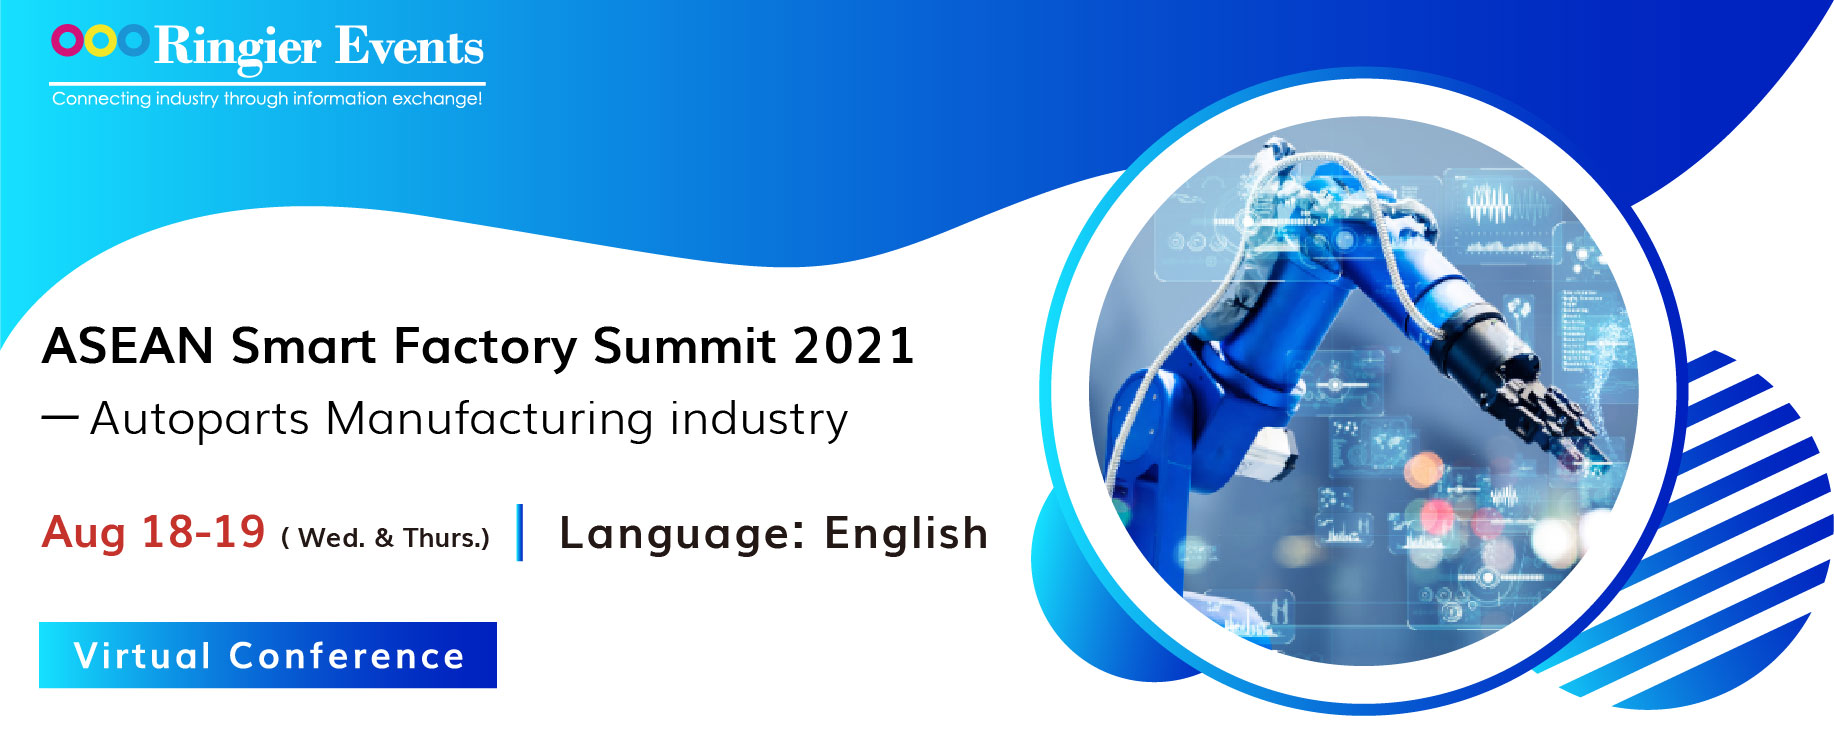 ASEAN Smart Factory Summit 2021- Autoparts Manufacturing industry